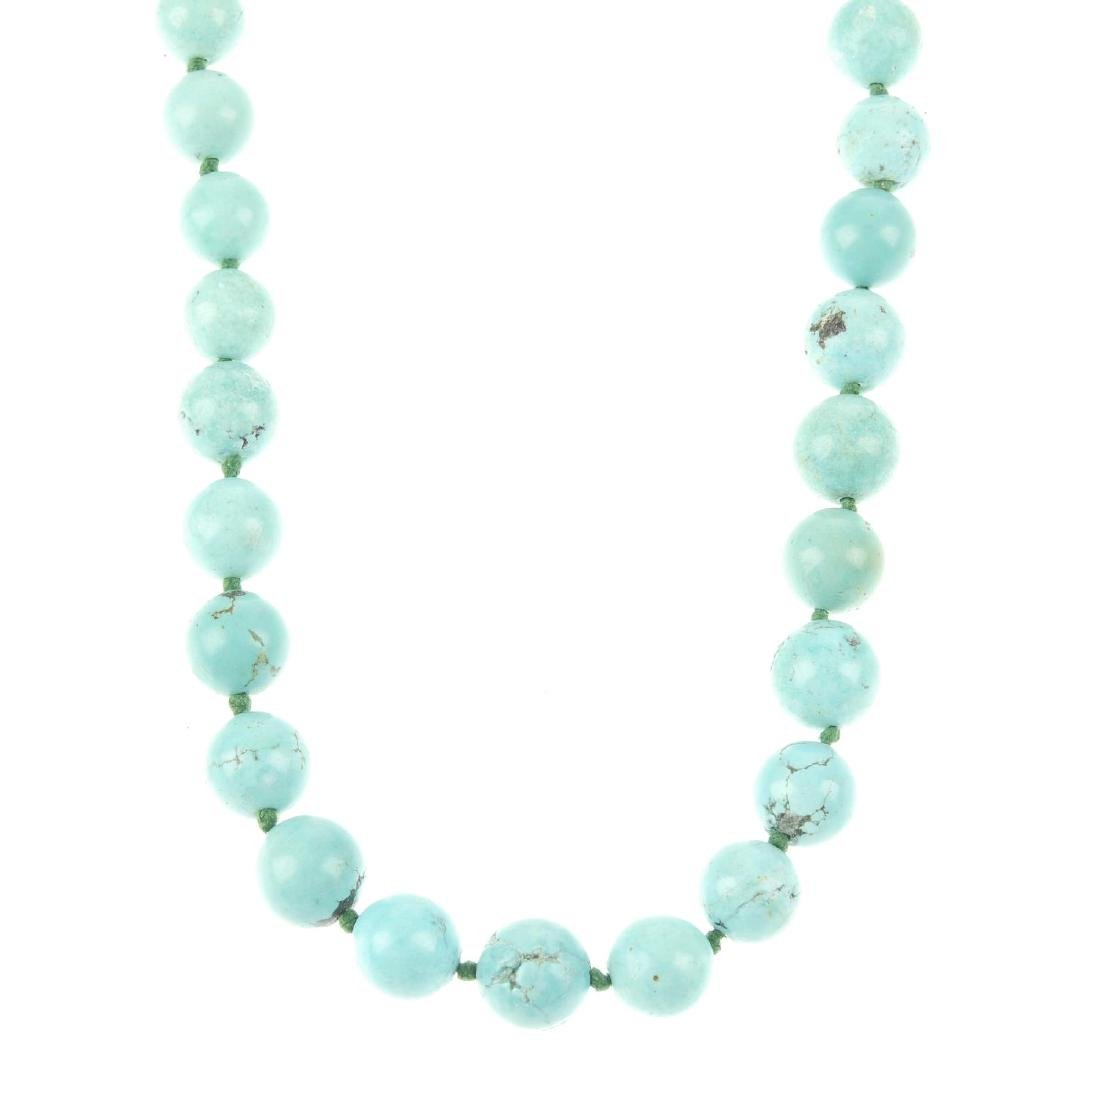 A turquoise necklace. Comprising sixty spherical